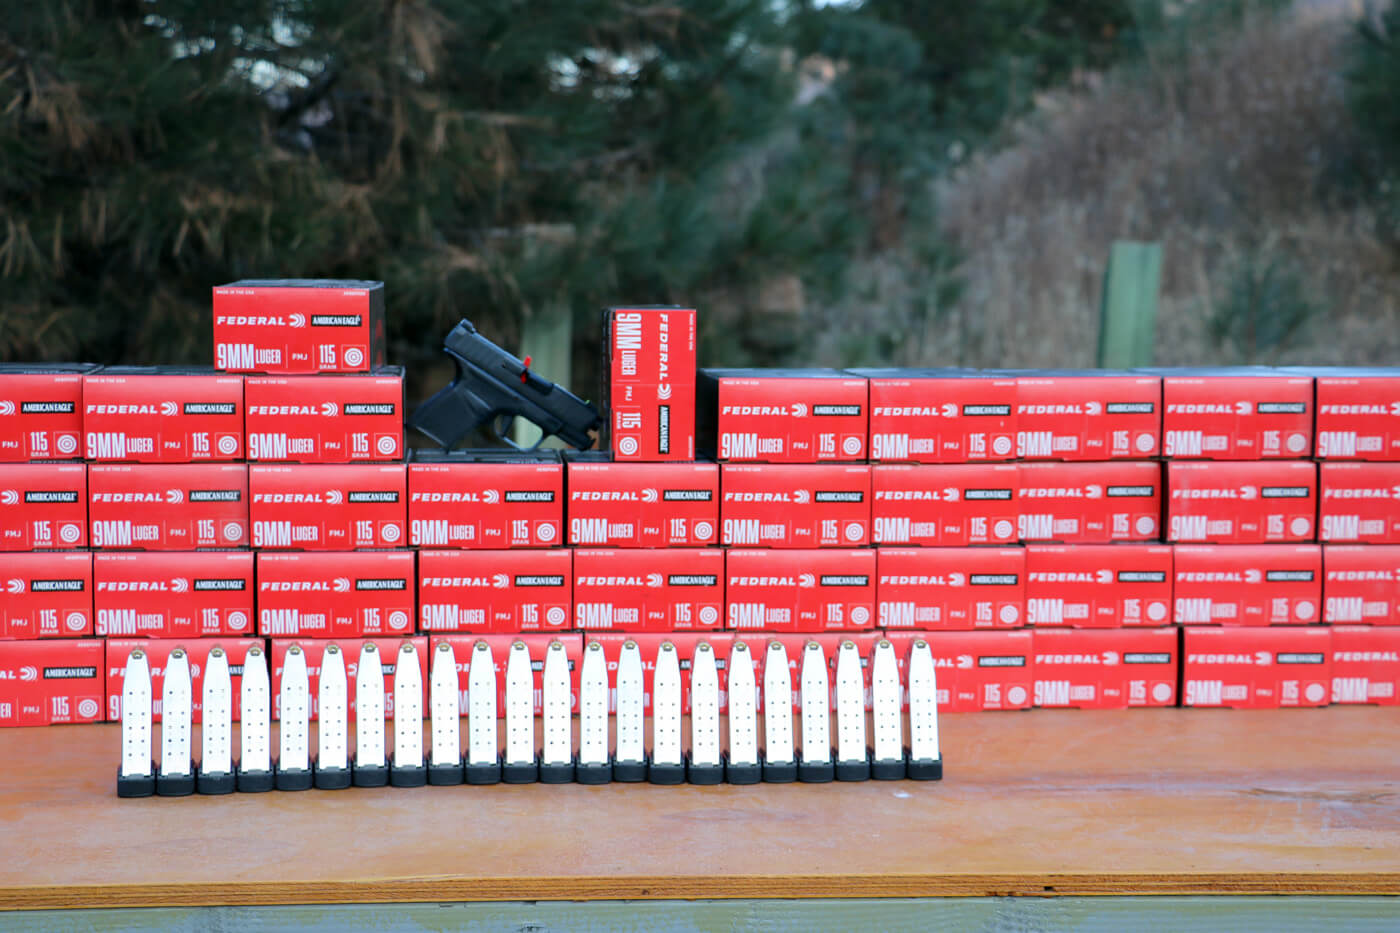 10,000 rounds of American Eagle ammunition